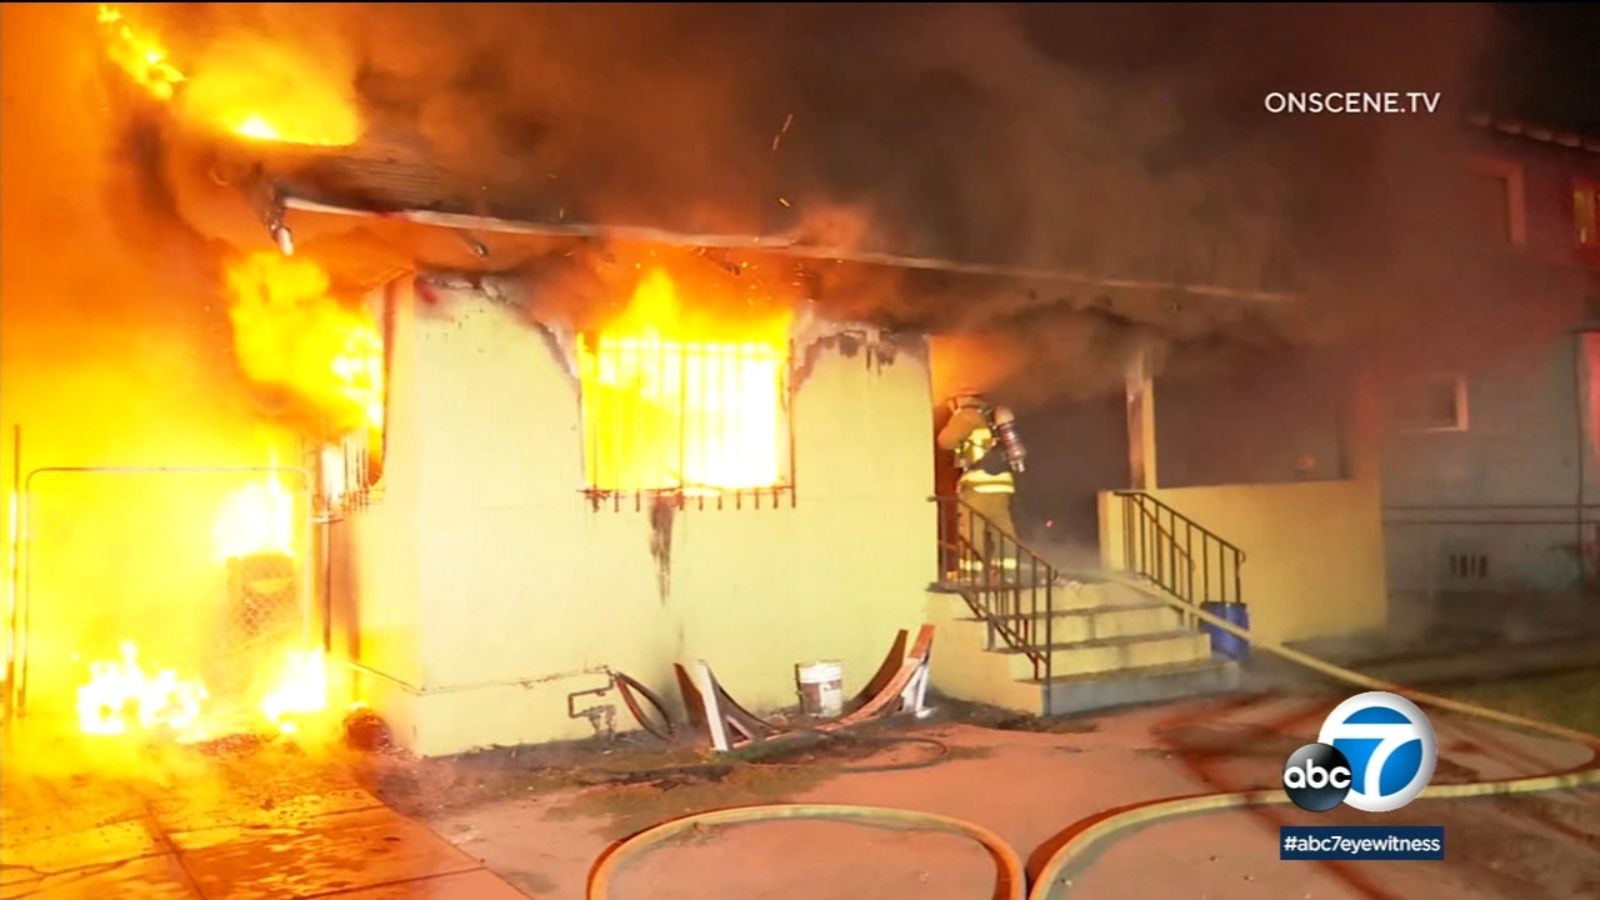 Murder suspect arrested in Exposition Park boarding house fire that left 2 residents dead